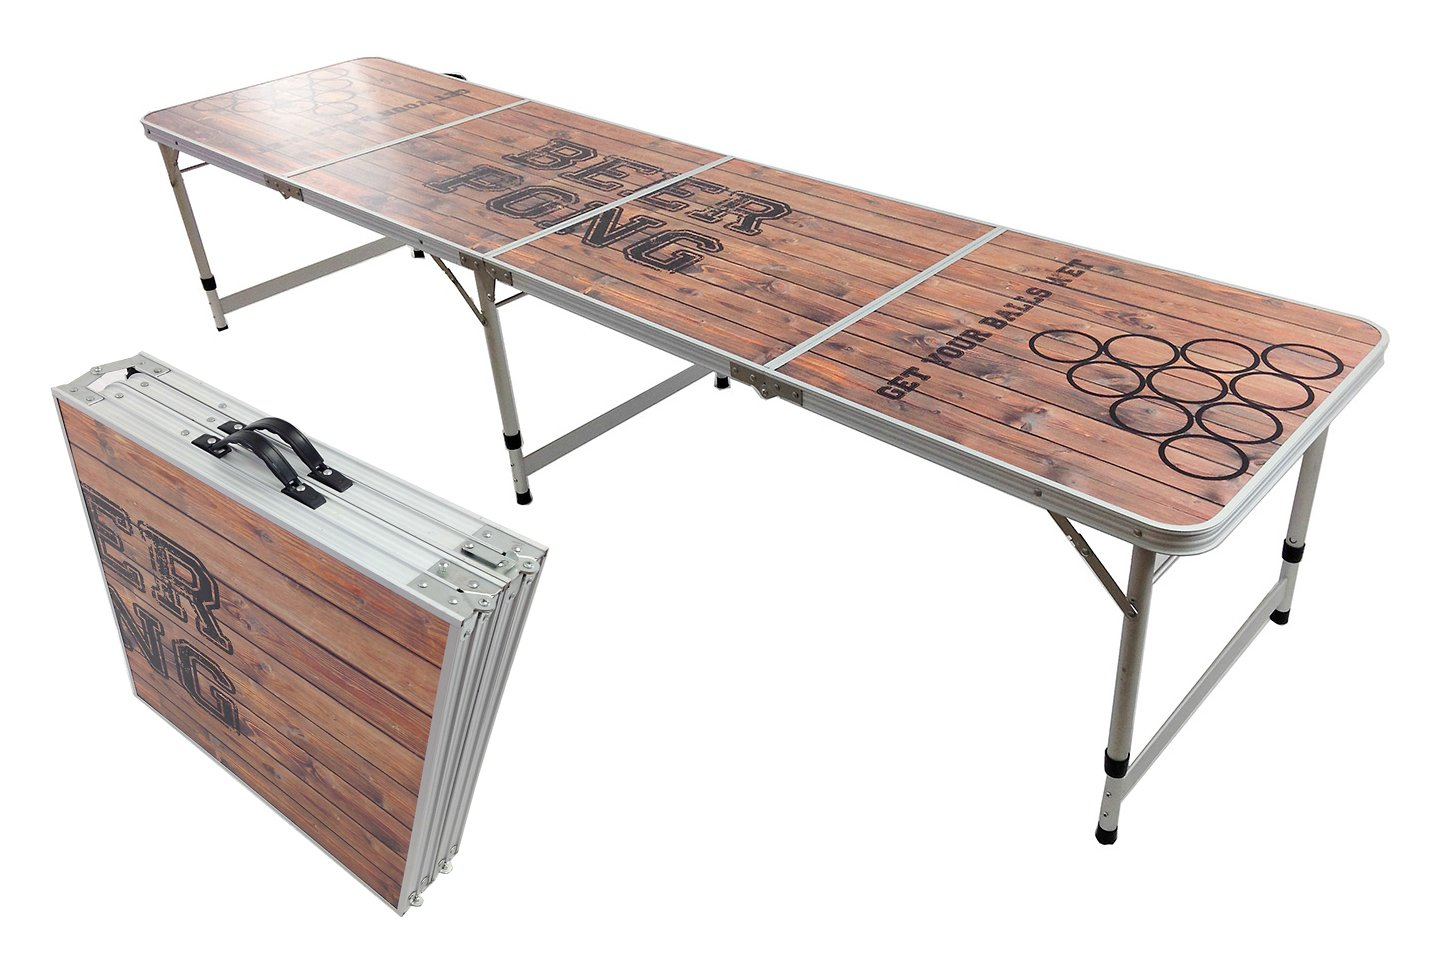 NEW BEER PONG TABLE 8' ALUMINUM PORTABLE ADJUSTABLE FOLDING INDOOR OUTDOOR TAILGATE DRINKING PARTY GAME #8 PONGBUDDY